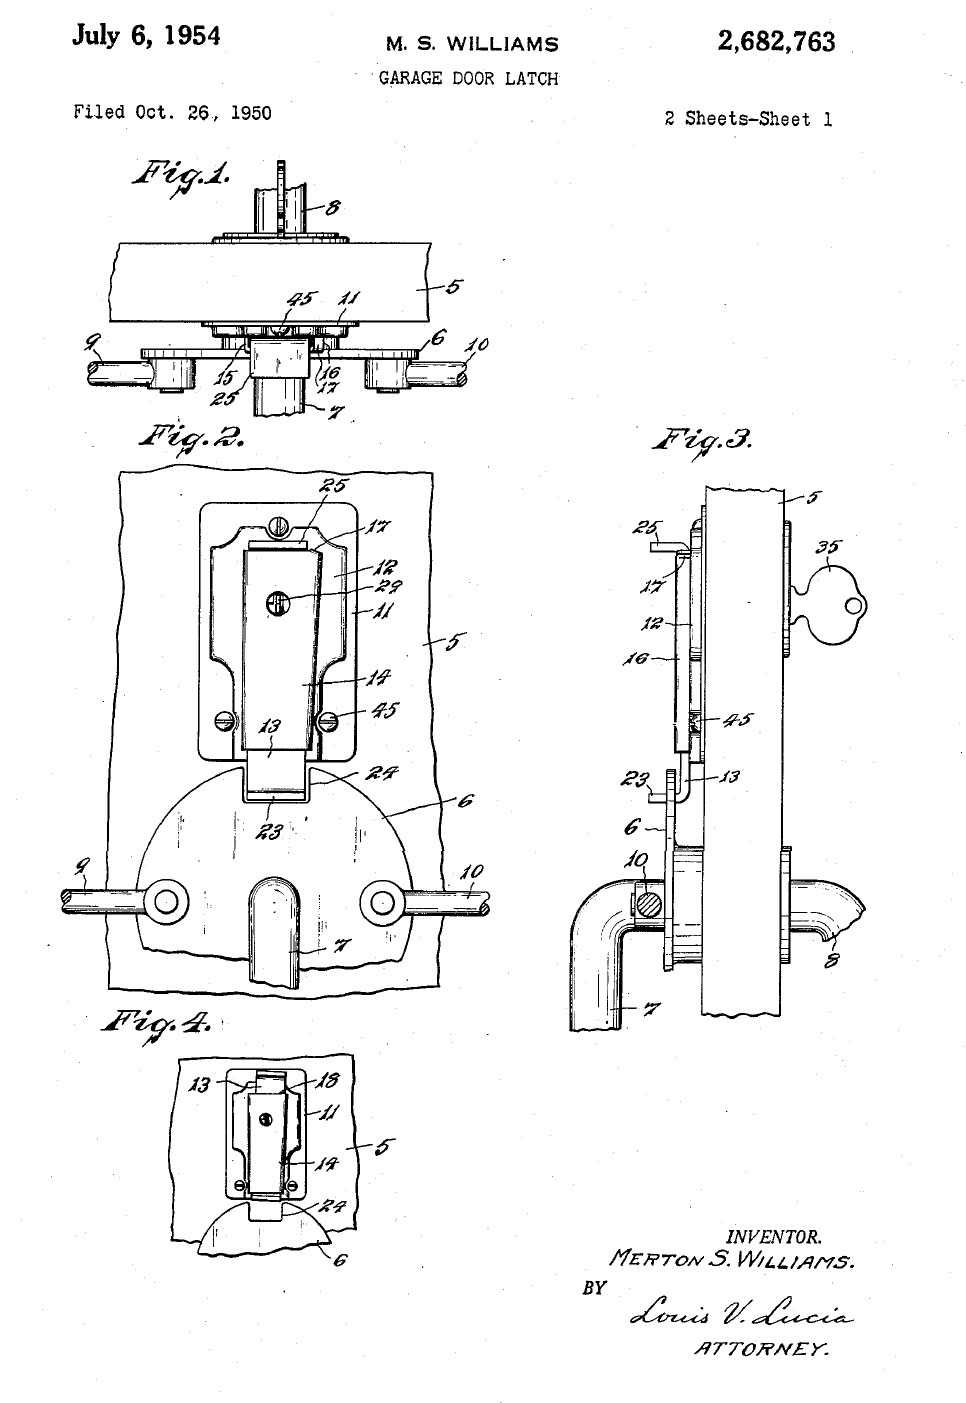 Progress Is Fine But Its Gone On For Too Long November 2012 Yamaha Yg1 Wiring Diagram The Eagle Lock Company Of Terryville Connecticut Dates Back To 1833 When Eli Terry Junior Founded Incorporating It In 1854